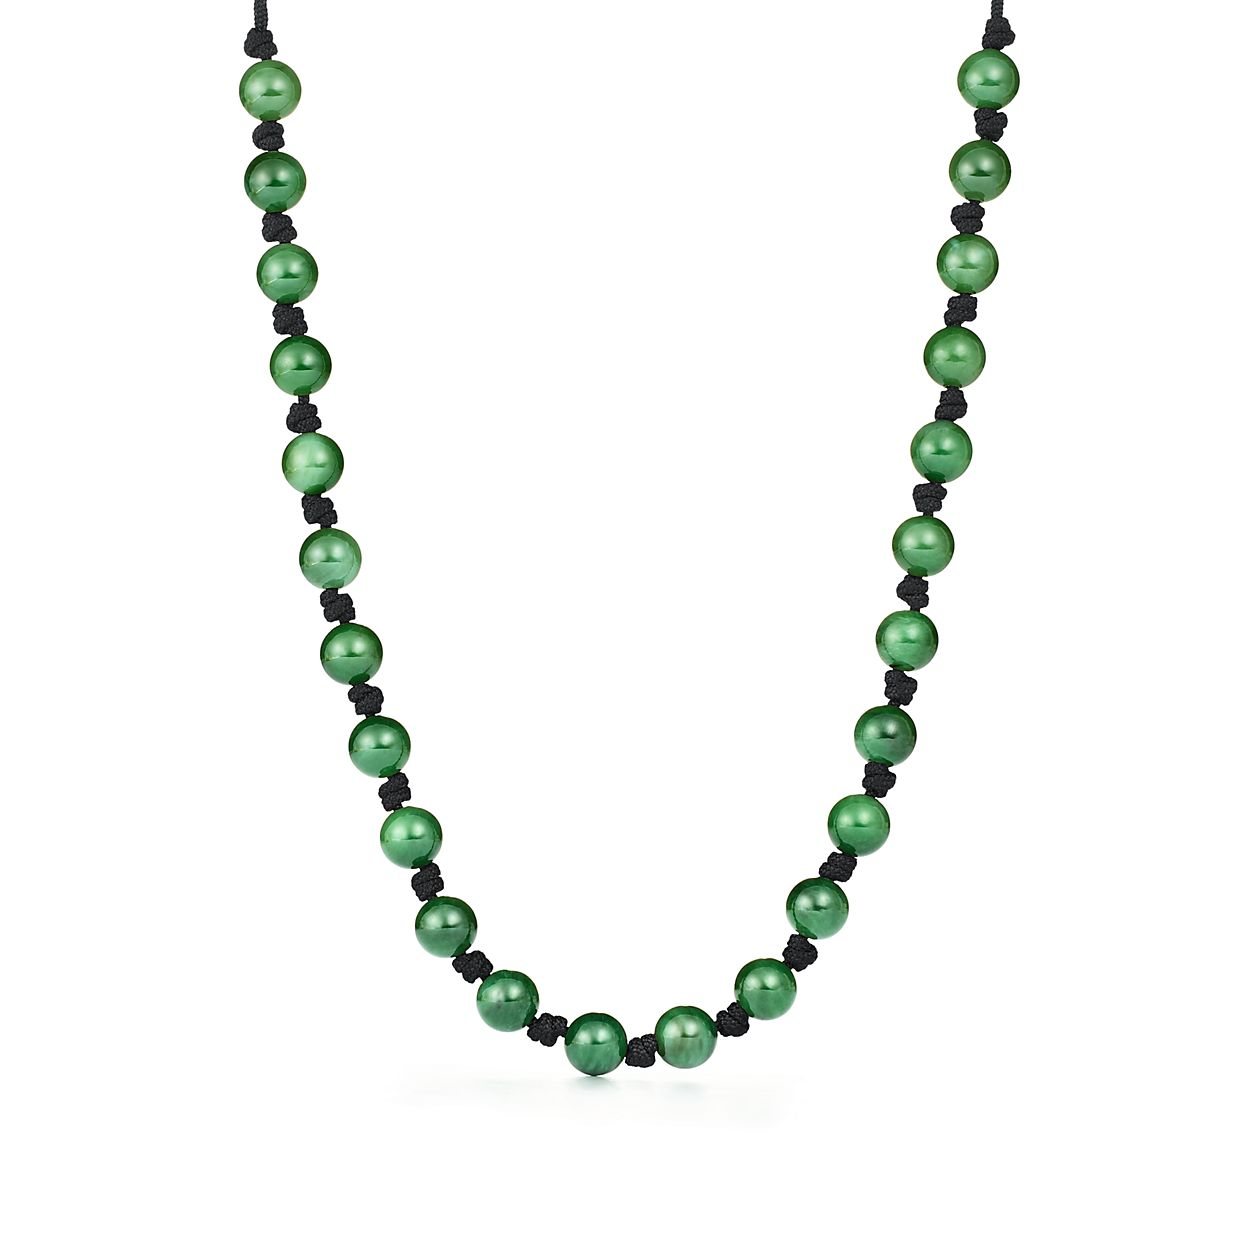 garnet kaystore green silver sterling necklace snake hover accents jade to kay en zm zoom mv